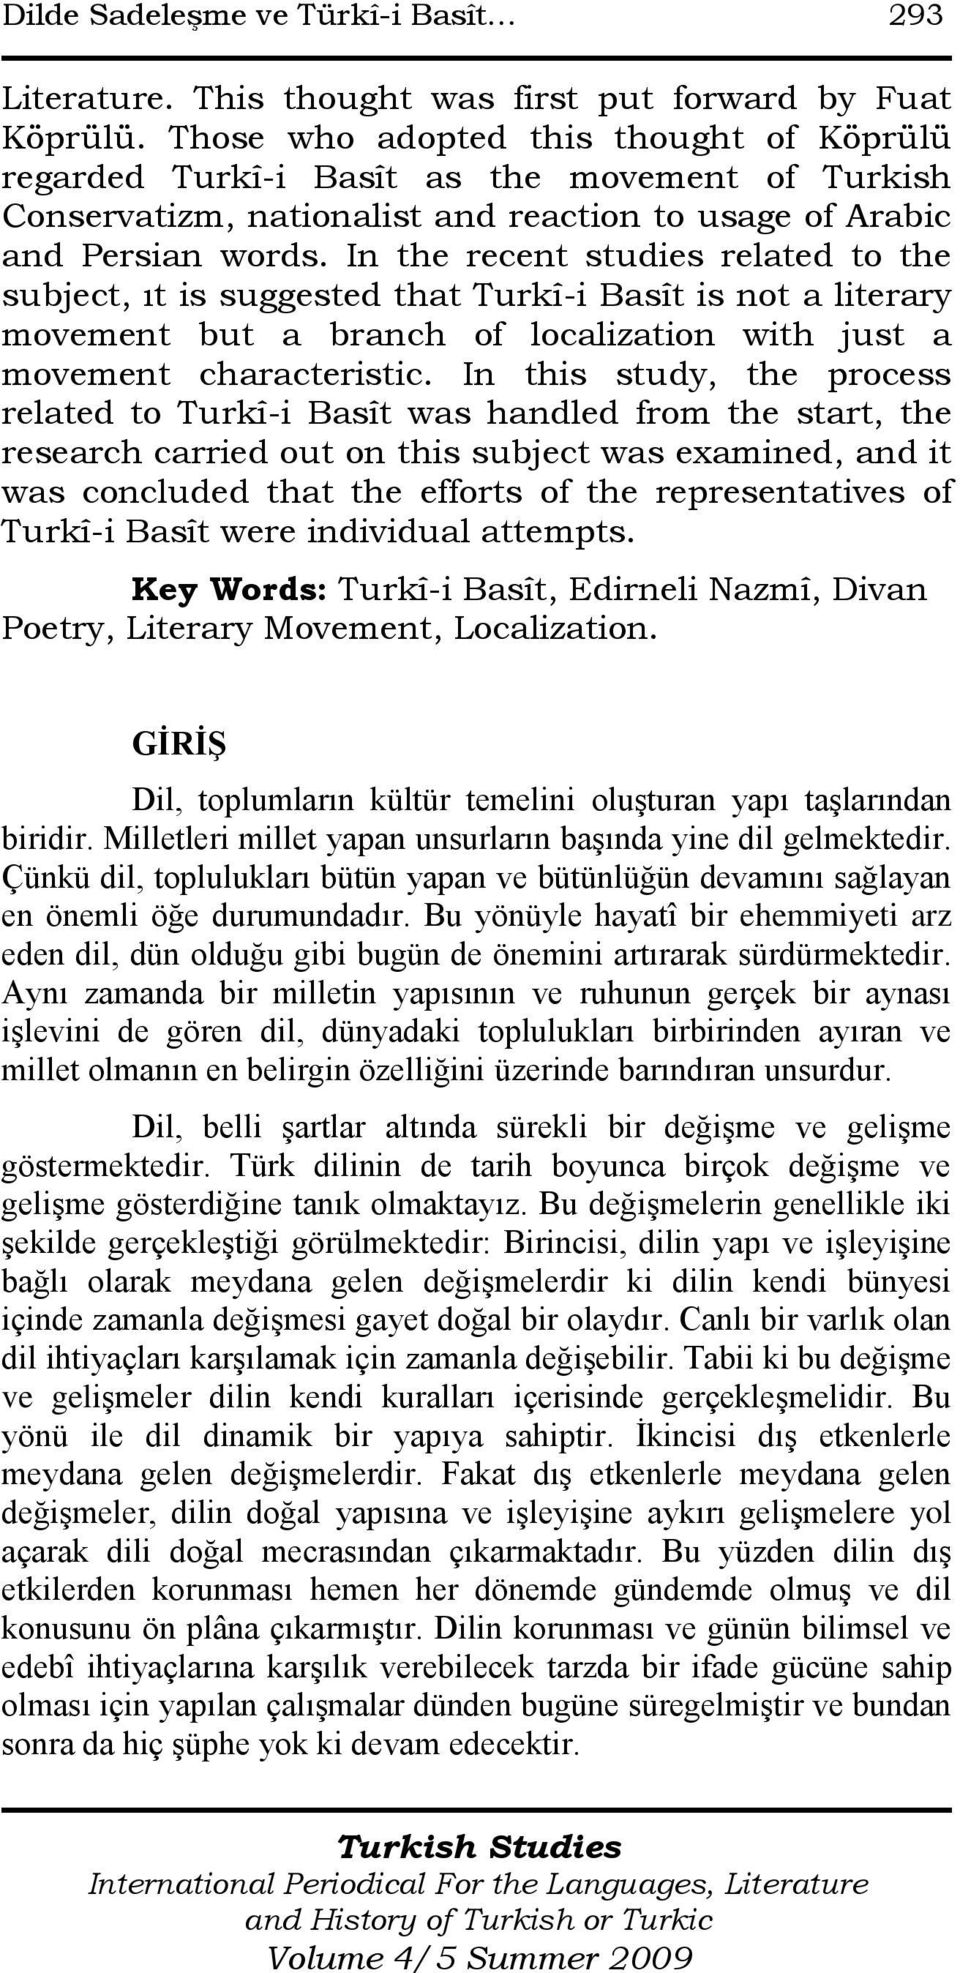 In the recent studies related to the subject, ıt is suggested that Turkî-i Basît is not a literary movement but a branch of localization with just a movement characteristic.